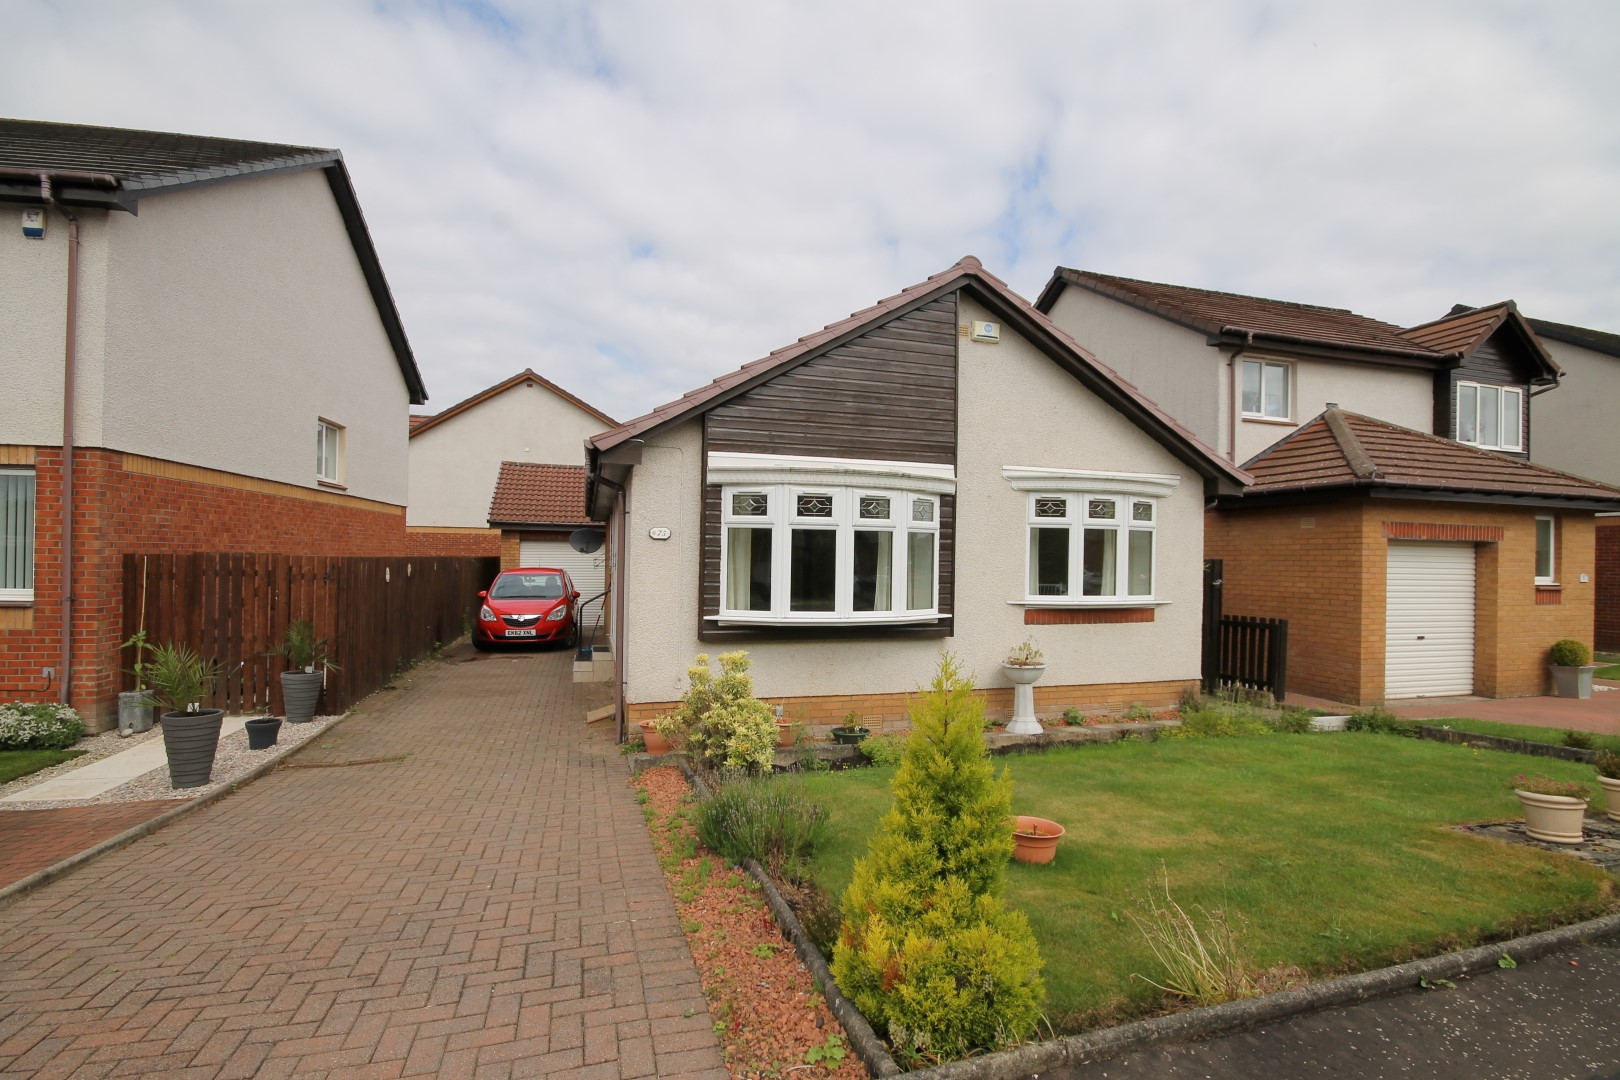 LARKHALL – 2 Bedroom Detached